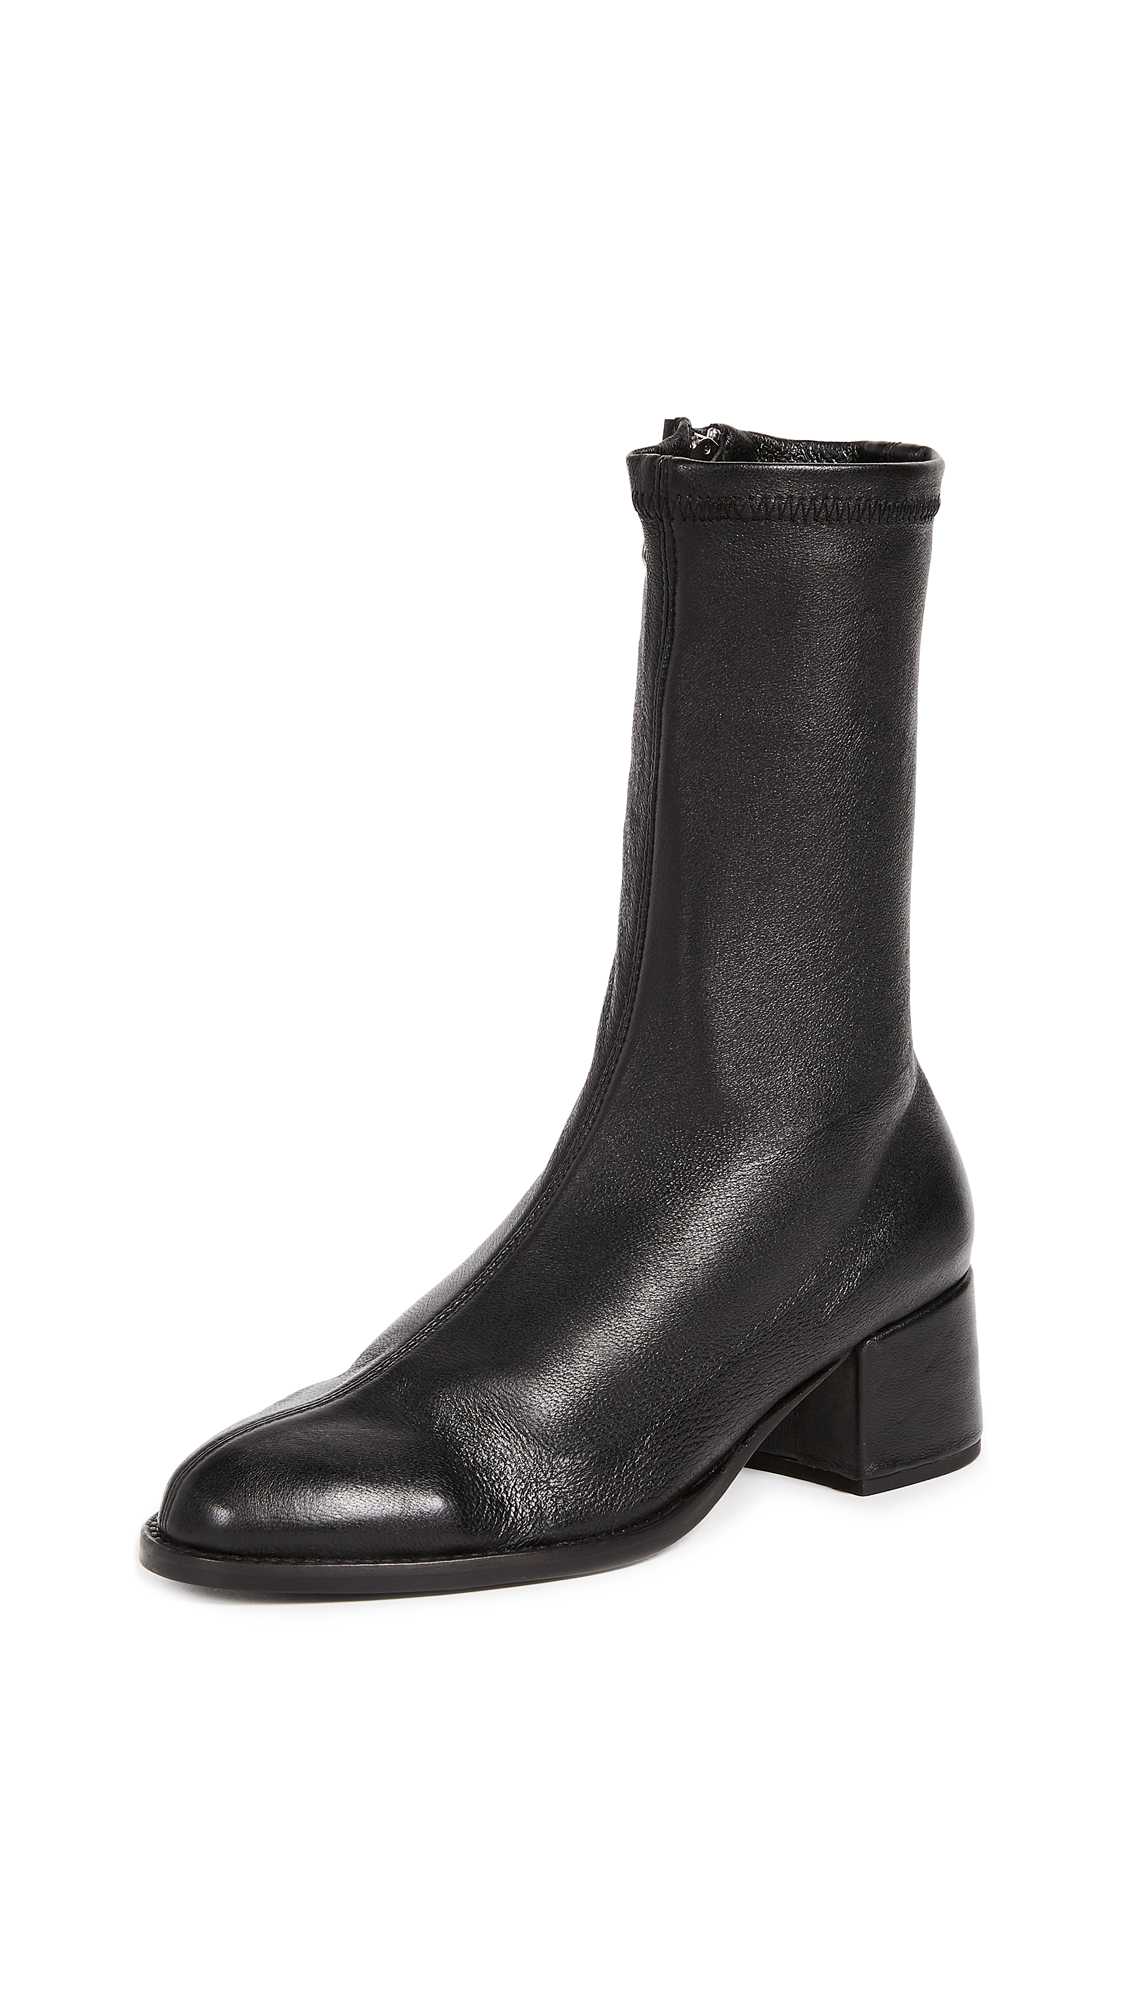 The Archive Greenwich Mid Boots - Black